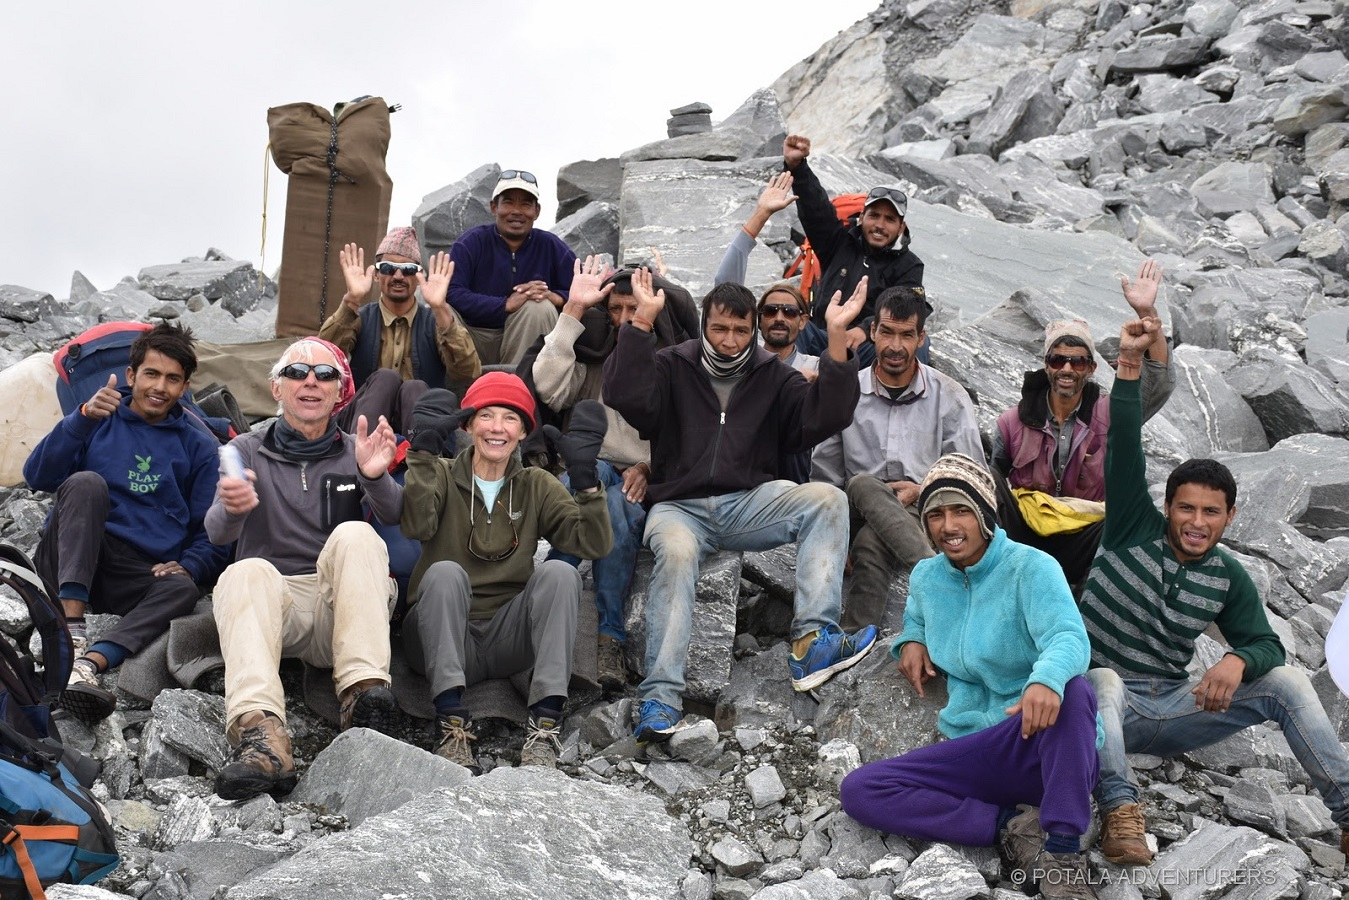 Trek from Kaza, Spiti to Kedarnath, Uttarakhand